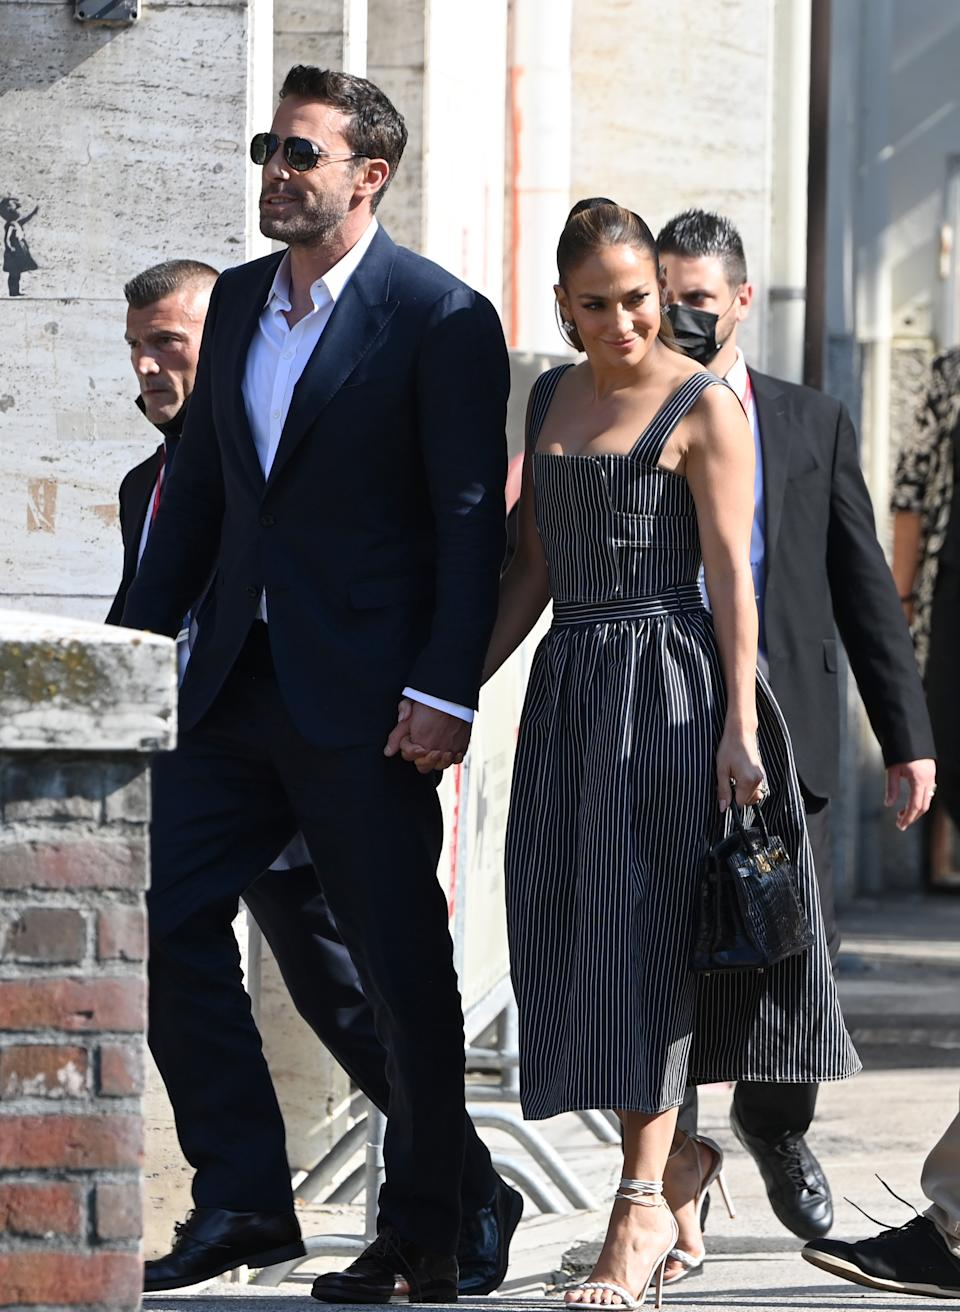 Ben Affleck and Jennifer Lopez leave at the 78th Venice International Film Festival on September 10, 2021 in Venice, Italy. (Getty Images)